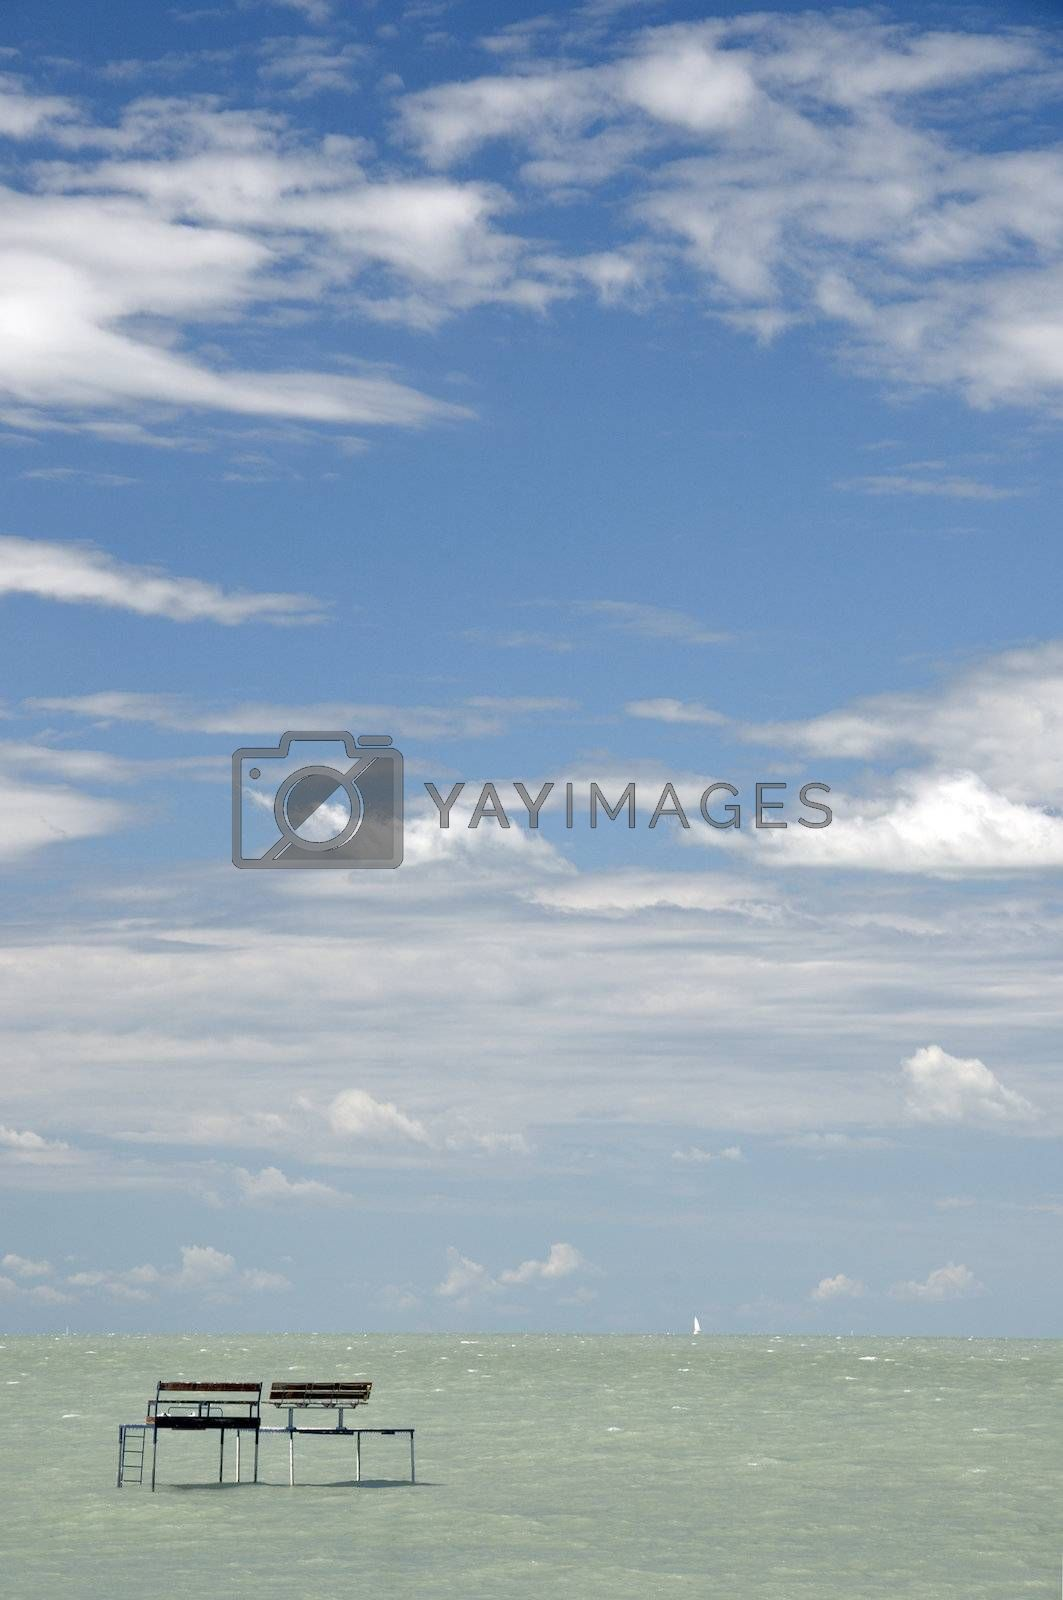 Fishing pier against blue sky with clouds